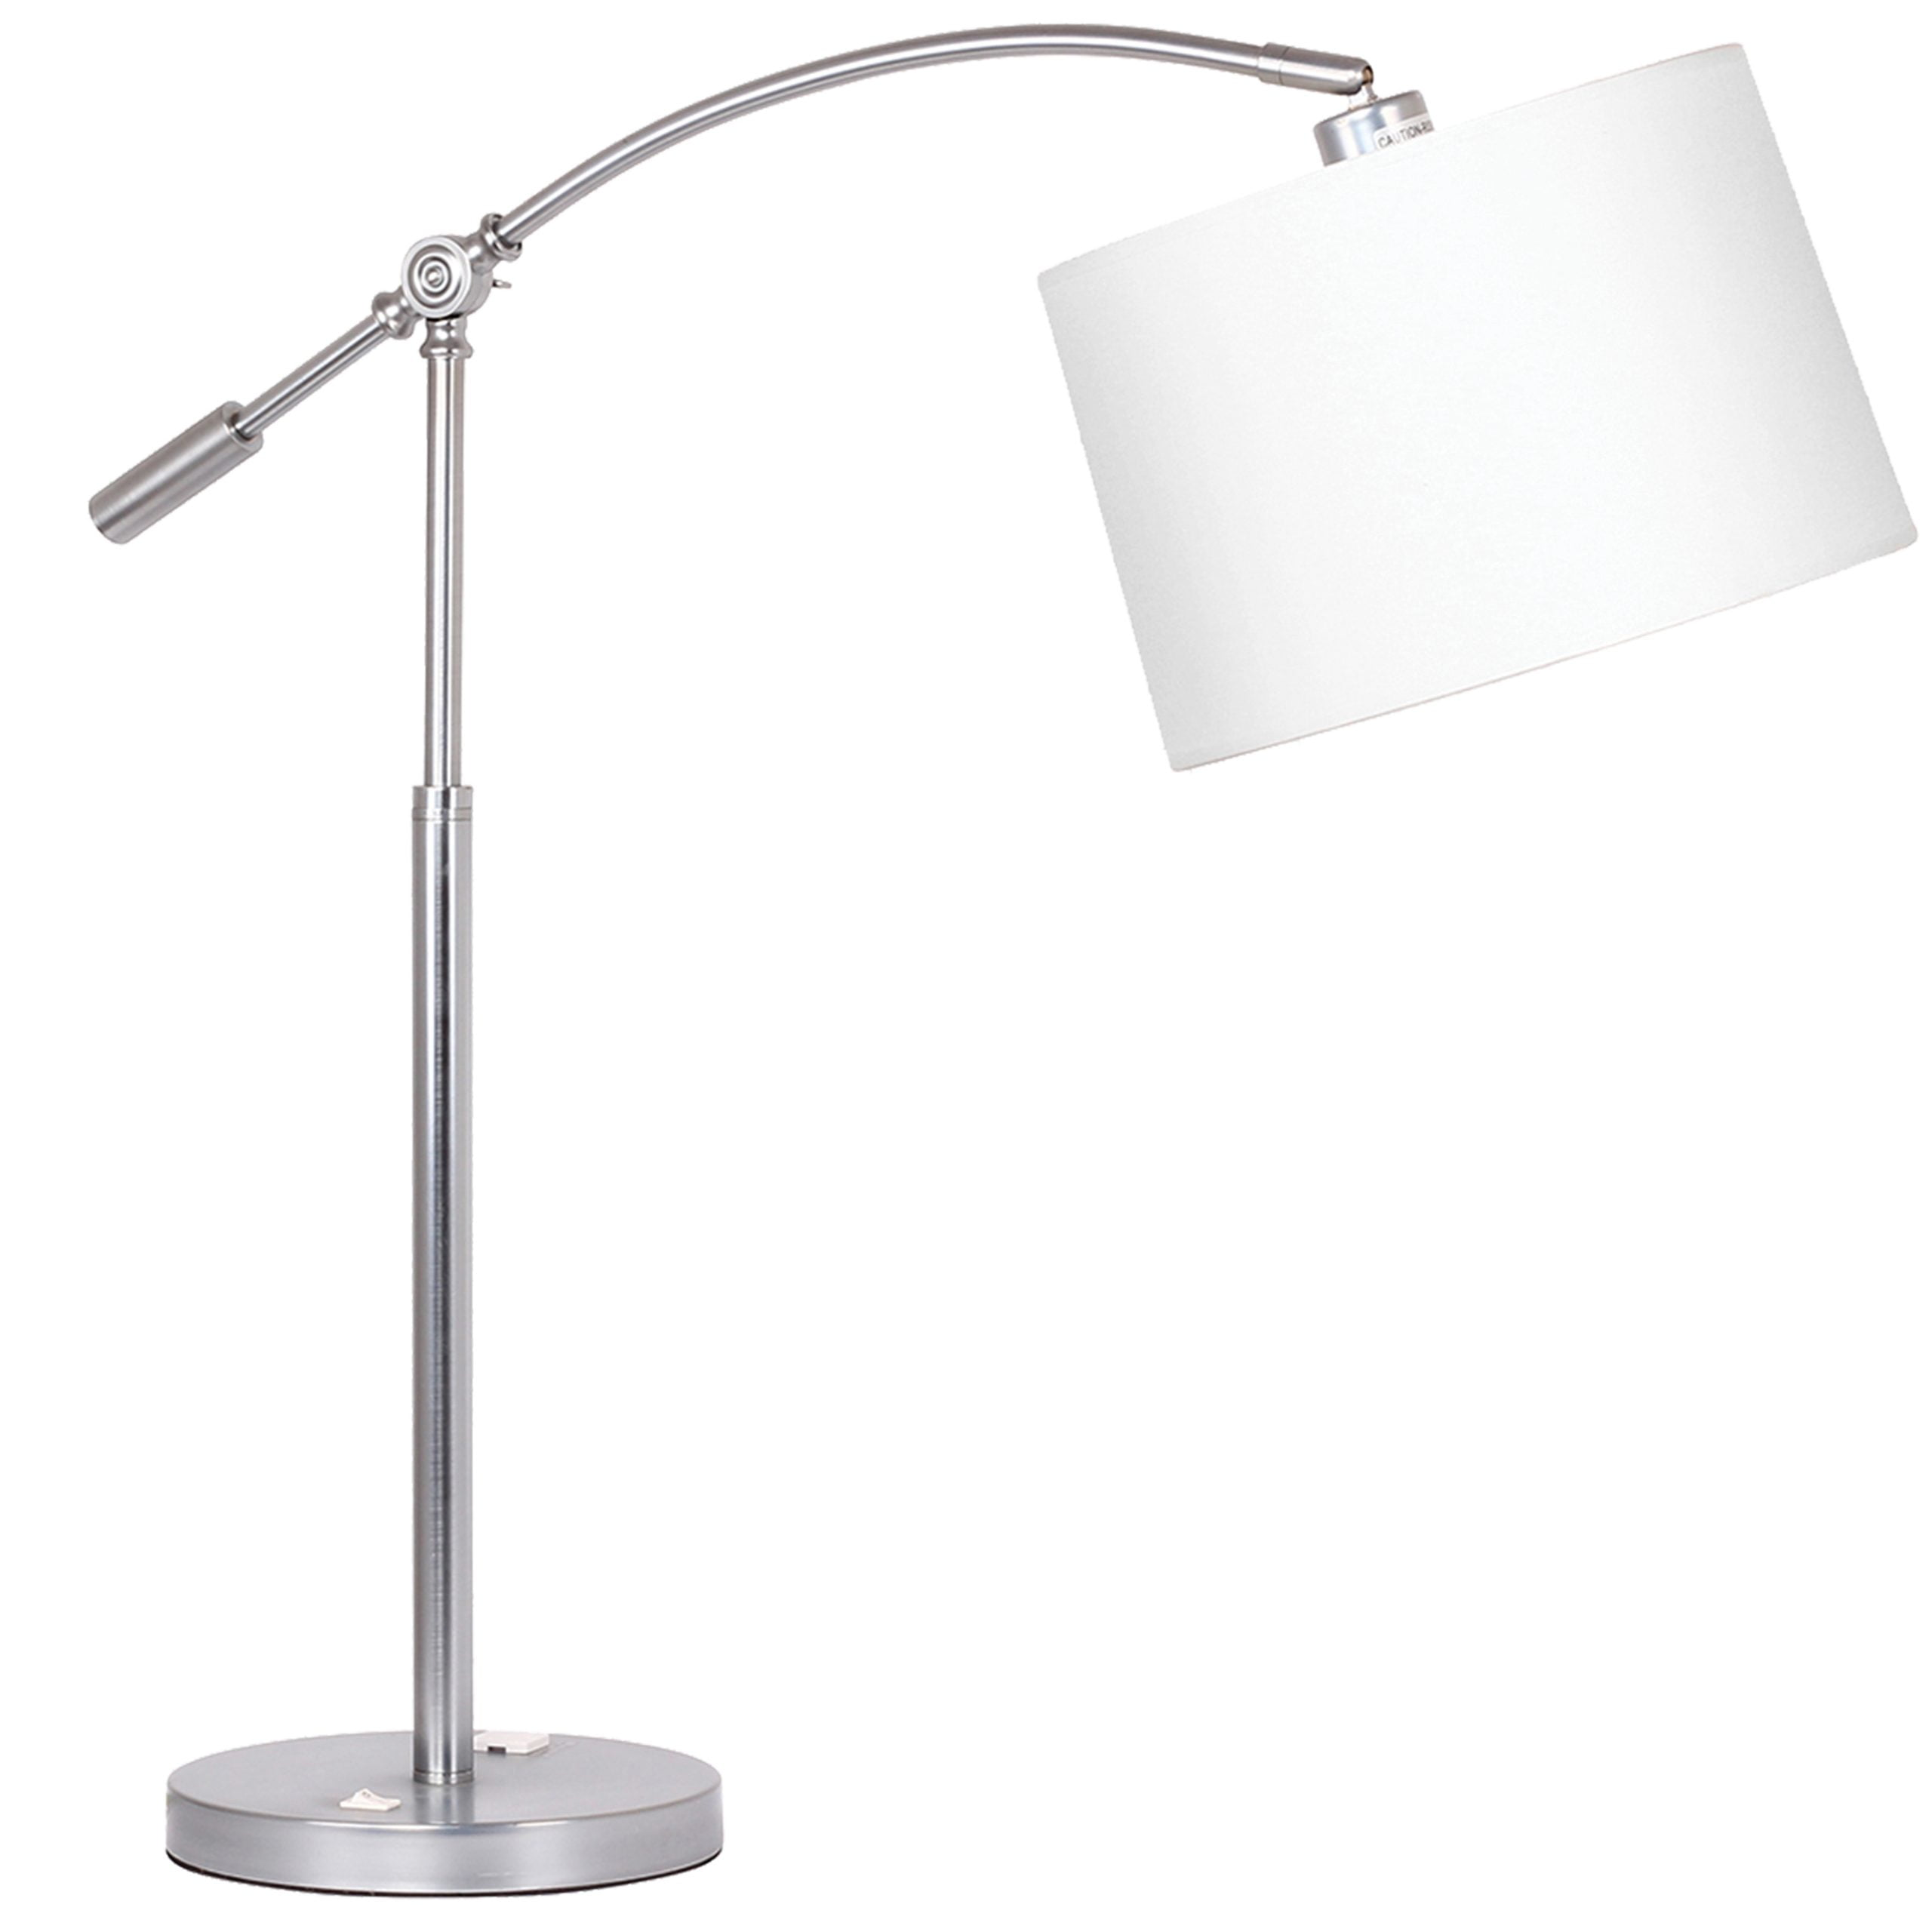 Fountain of Youth Desk Lamp with 1 Outlet